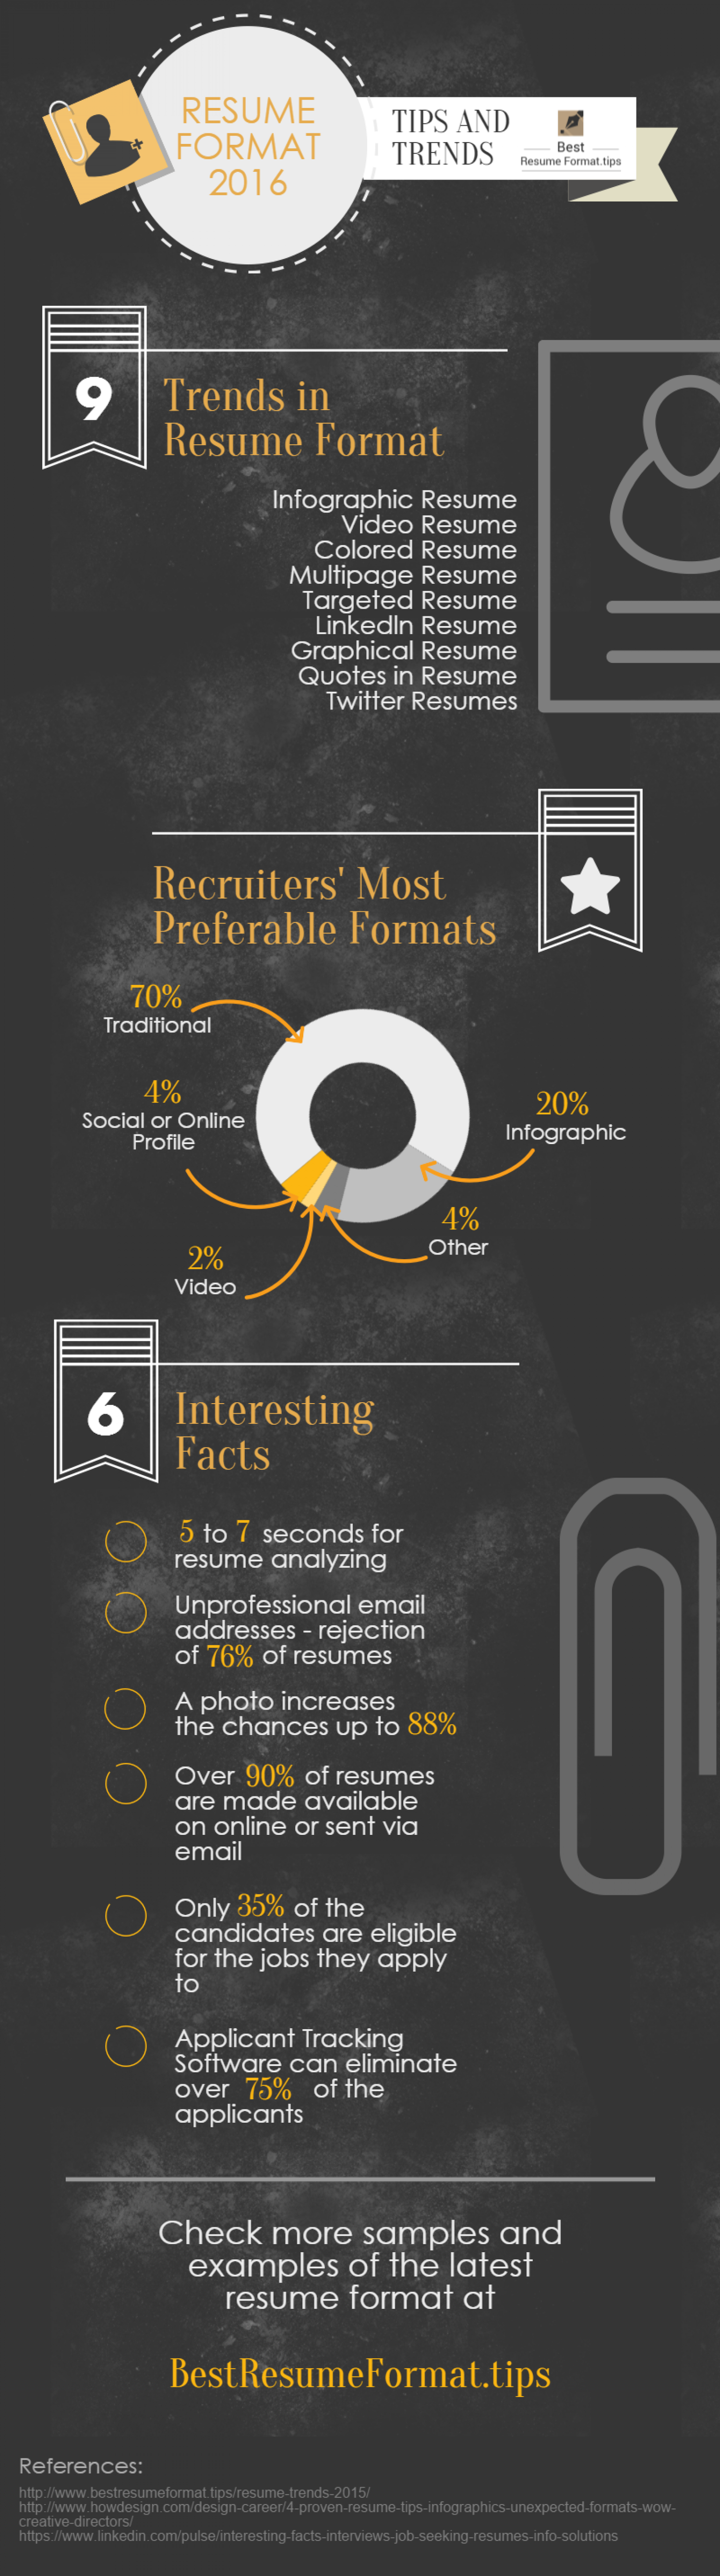 resume format tips and trends ly resume format 2016 tips and trends infographic